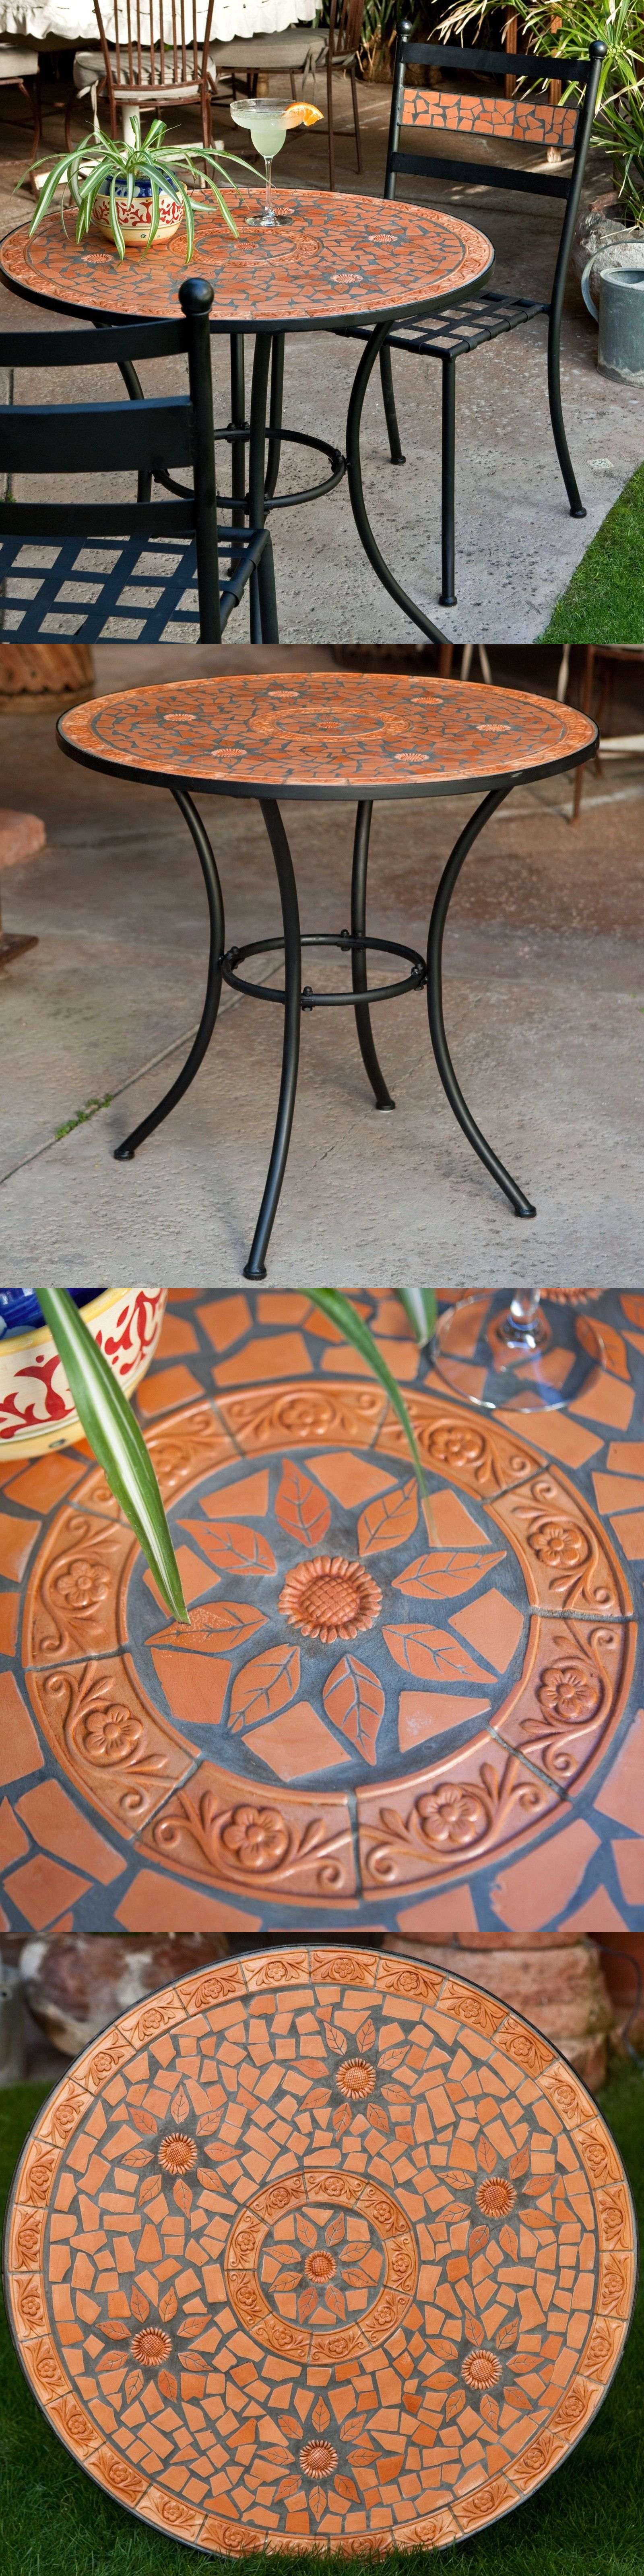 Tables 112590: Patio Bistro Table Mosaic Round Terracotta Iron Deck Yard  Furniture Dining  U003e